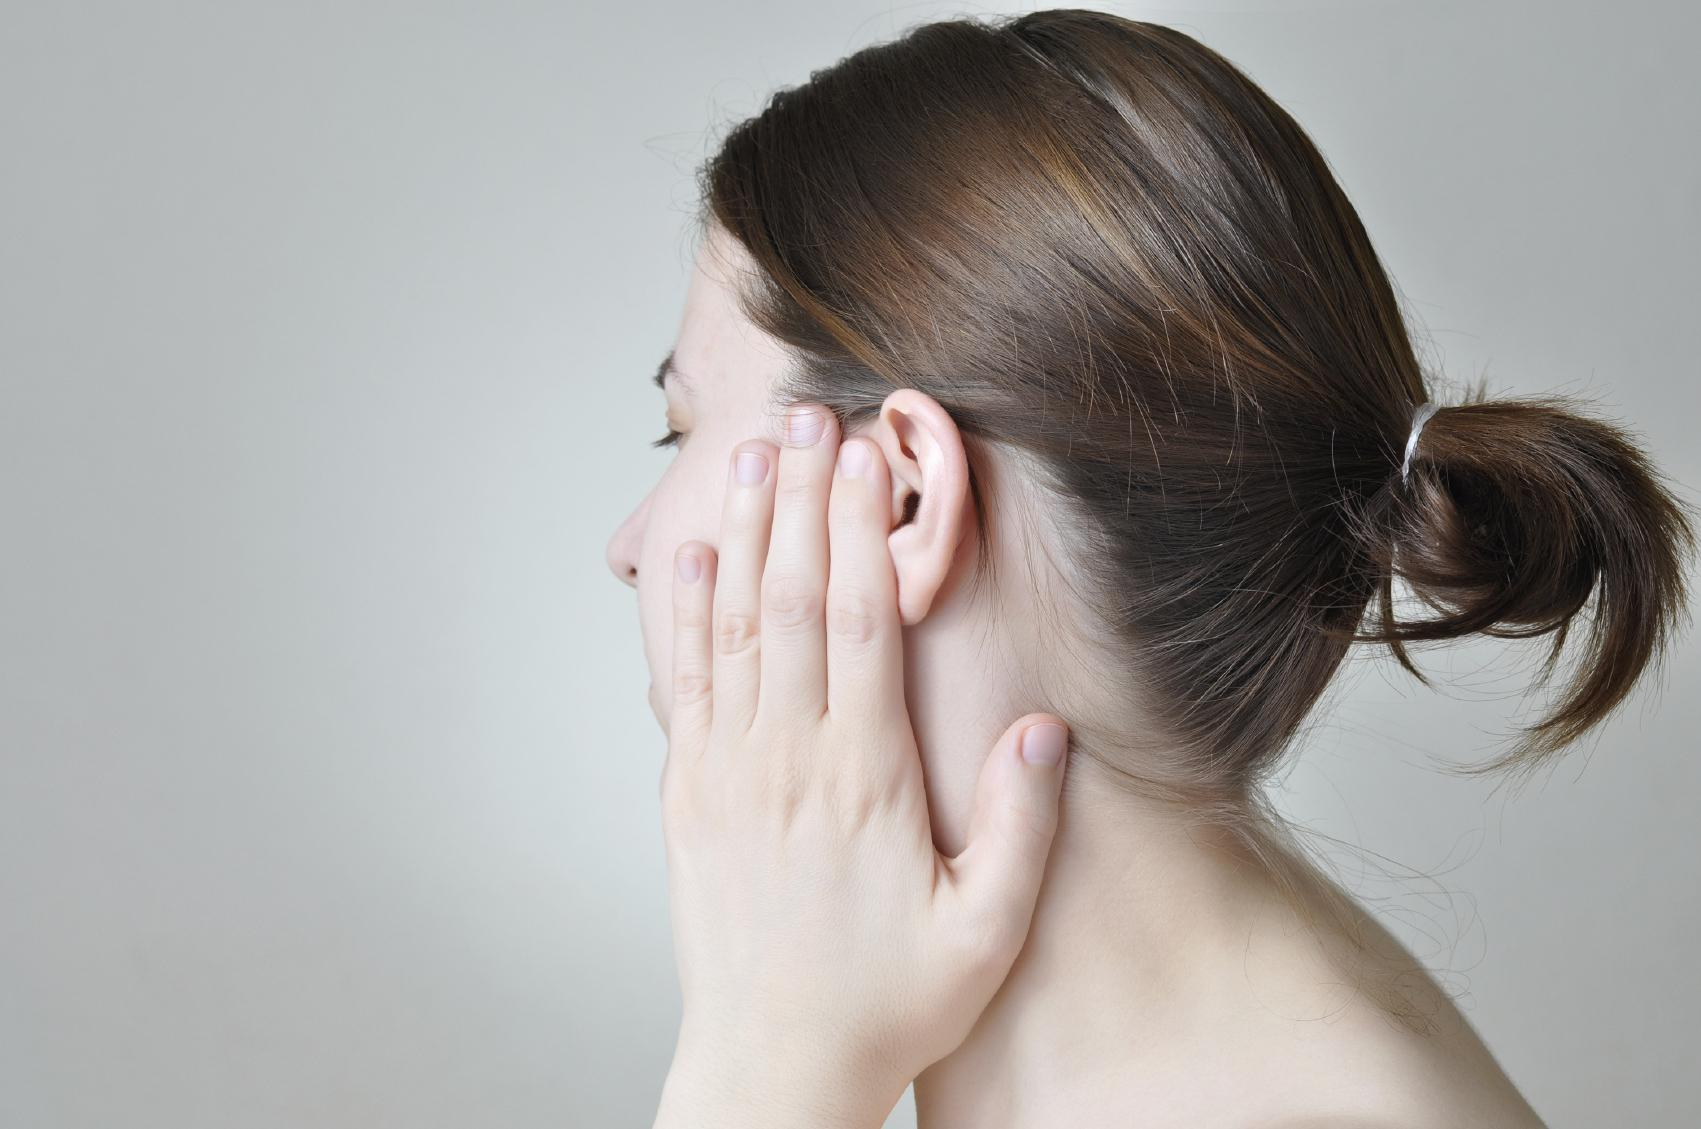 Common Causes of Ear Infections